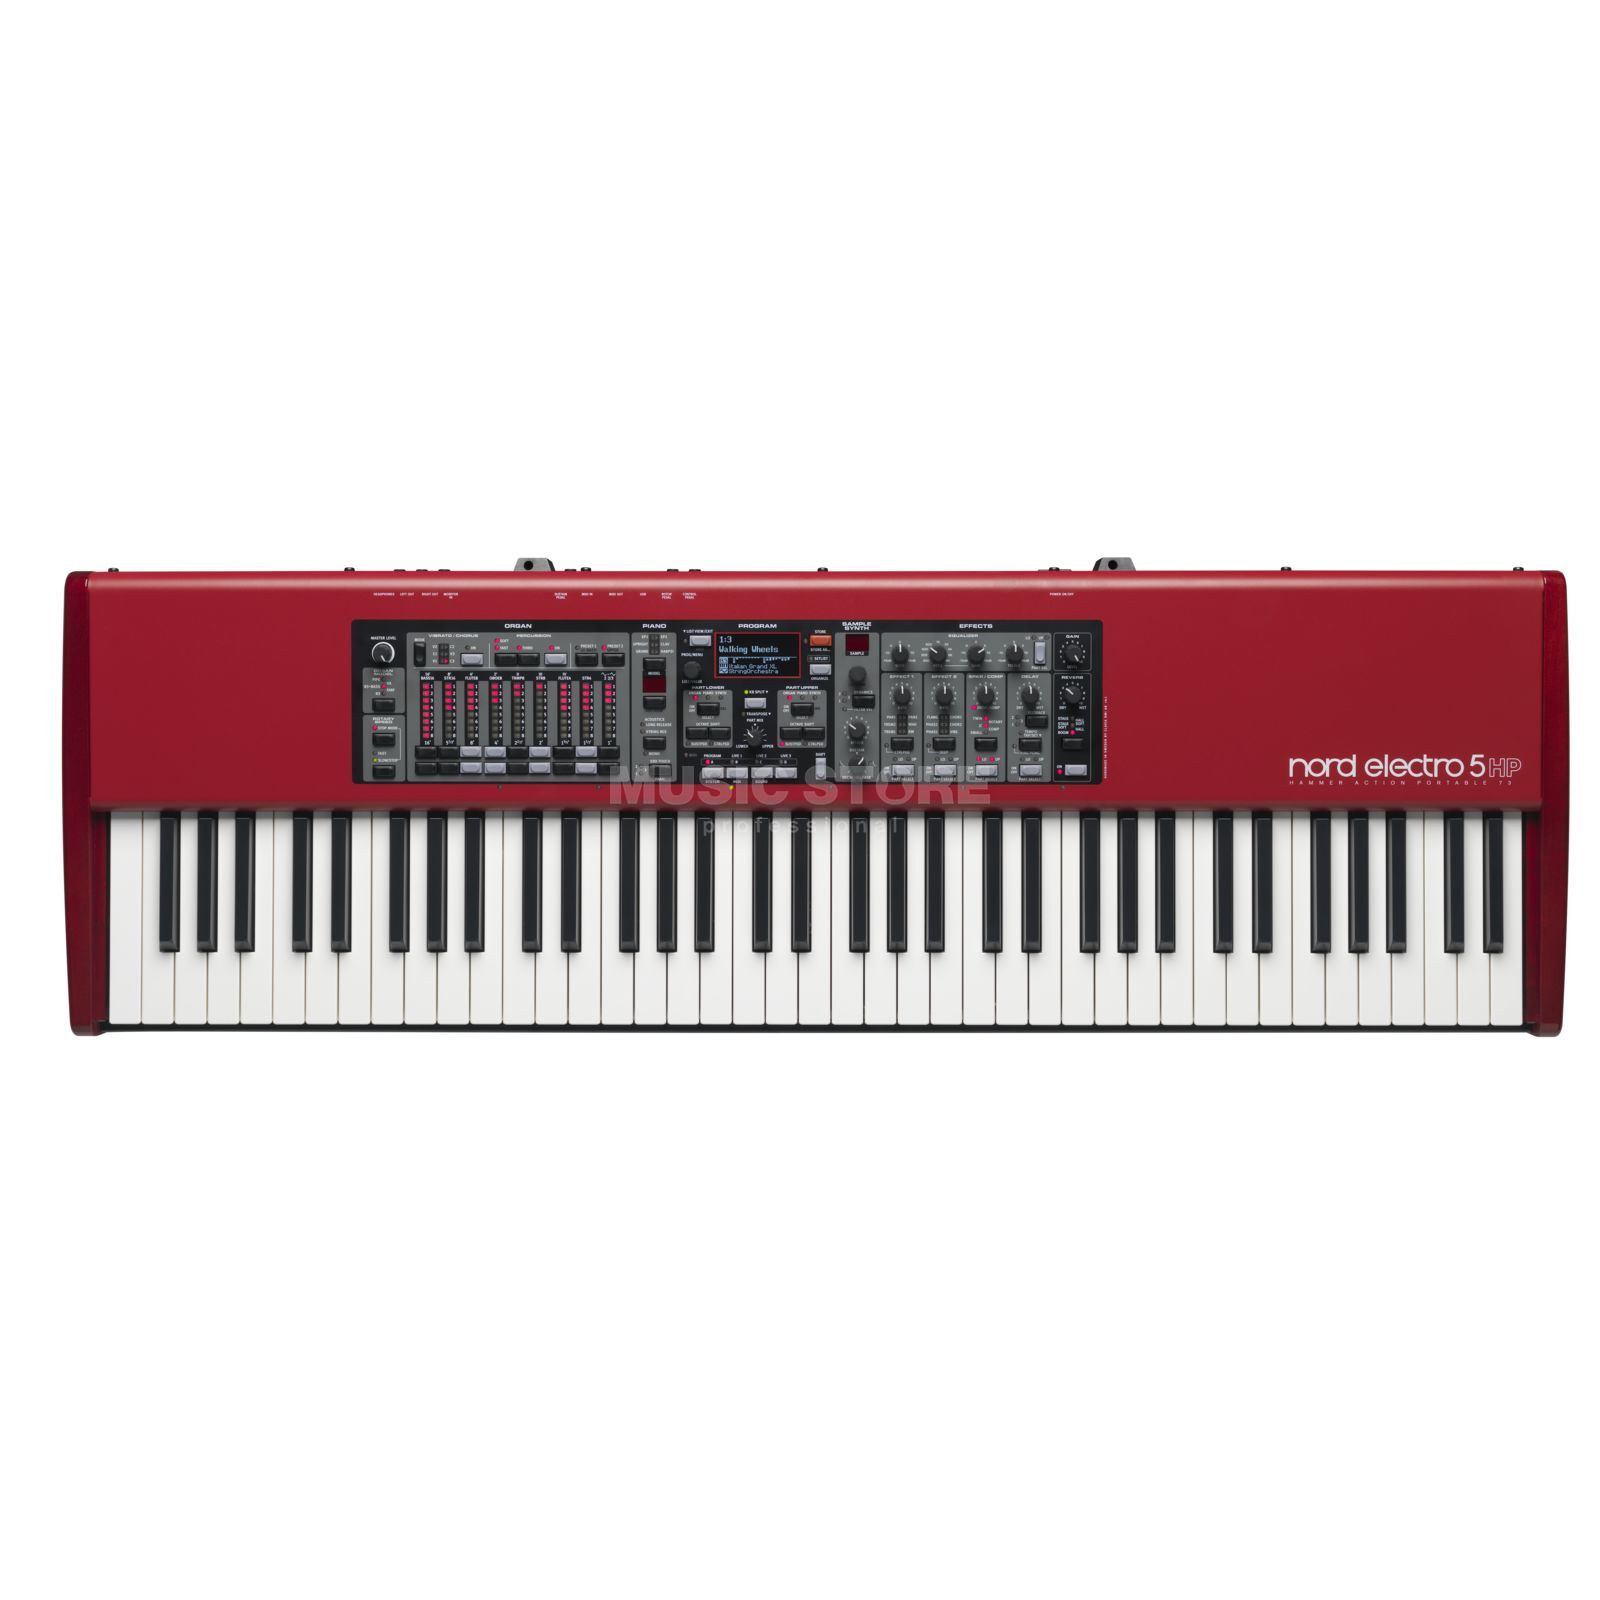 Clavia Nord Electro 5 HP 73 Stage Piano Produktbild